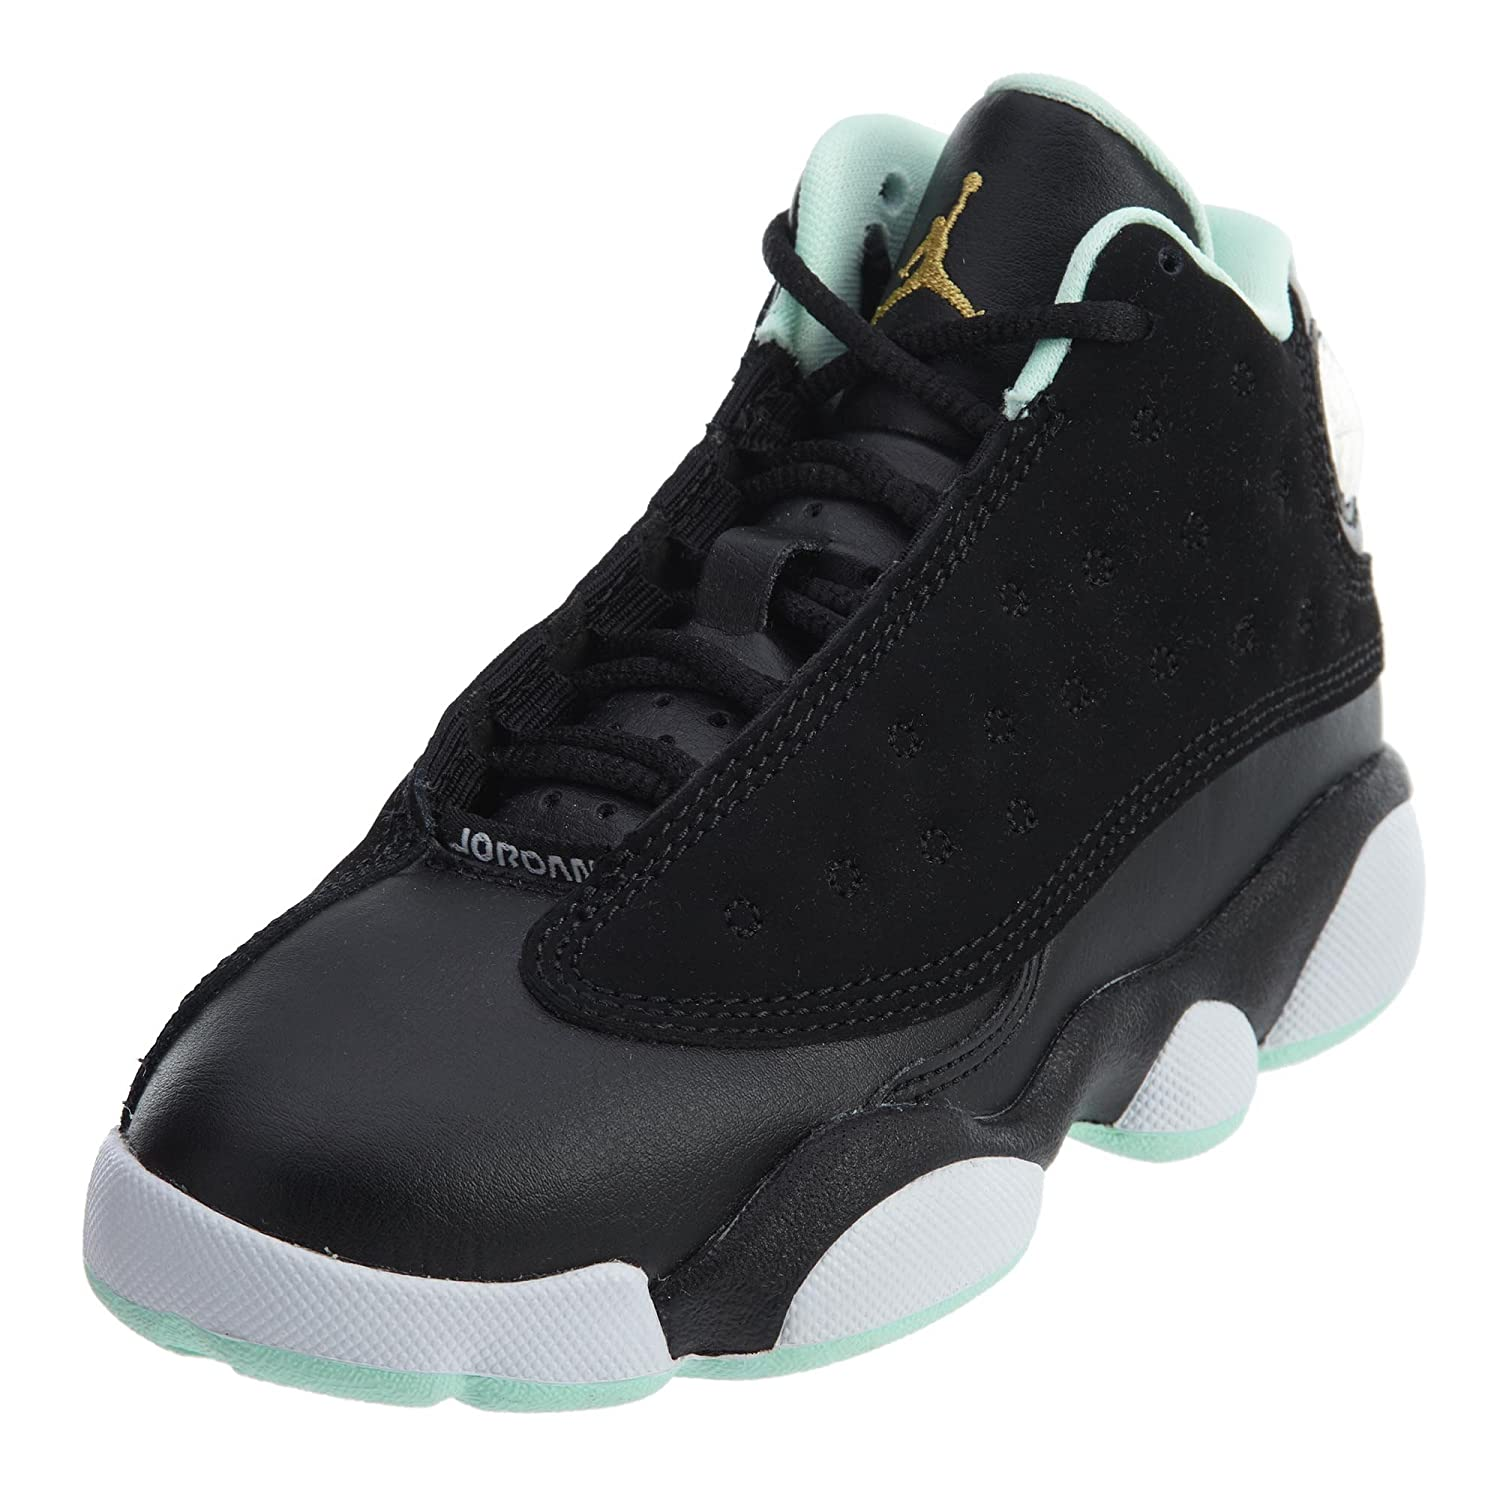 the best attitude dda73 6f4f9 Amazon.com   Jordan Retro 13